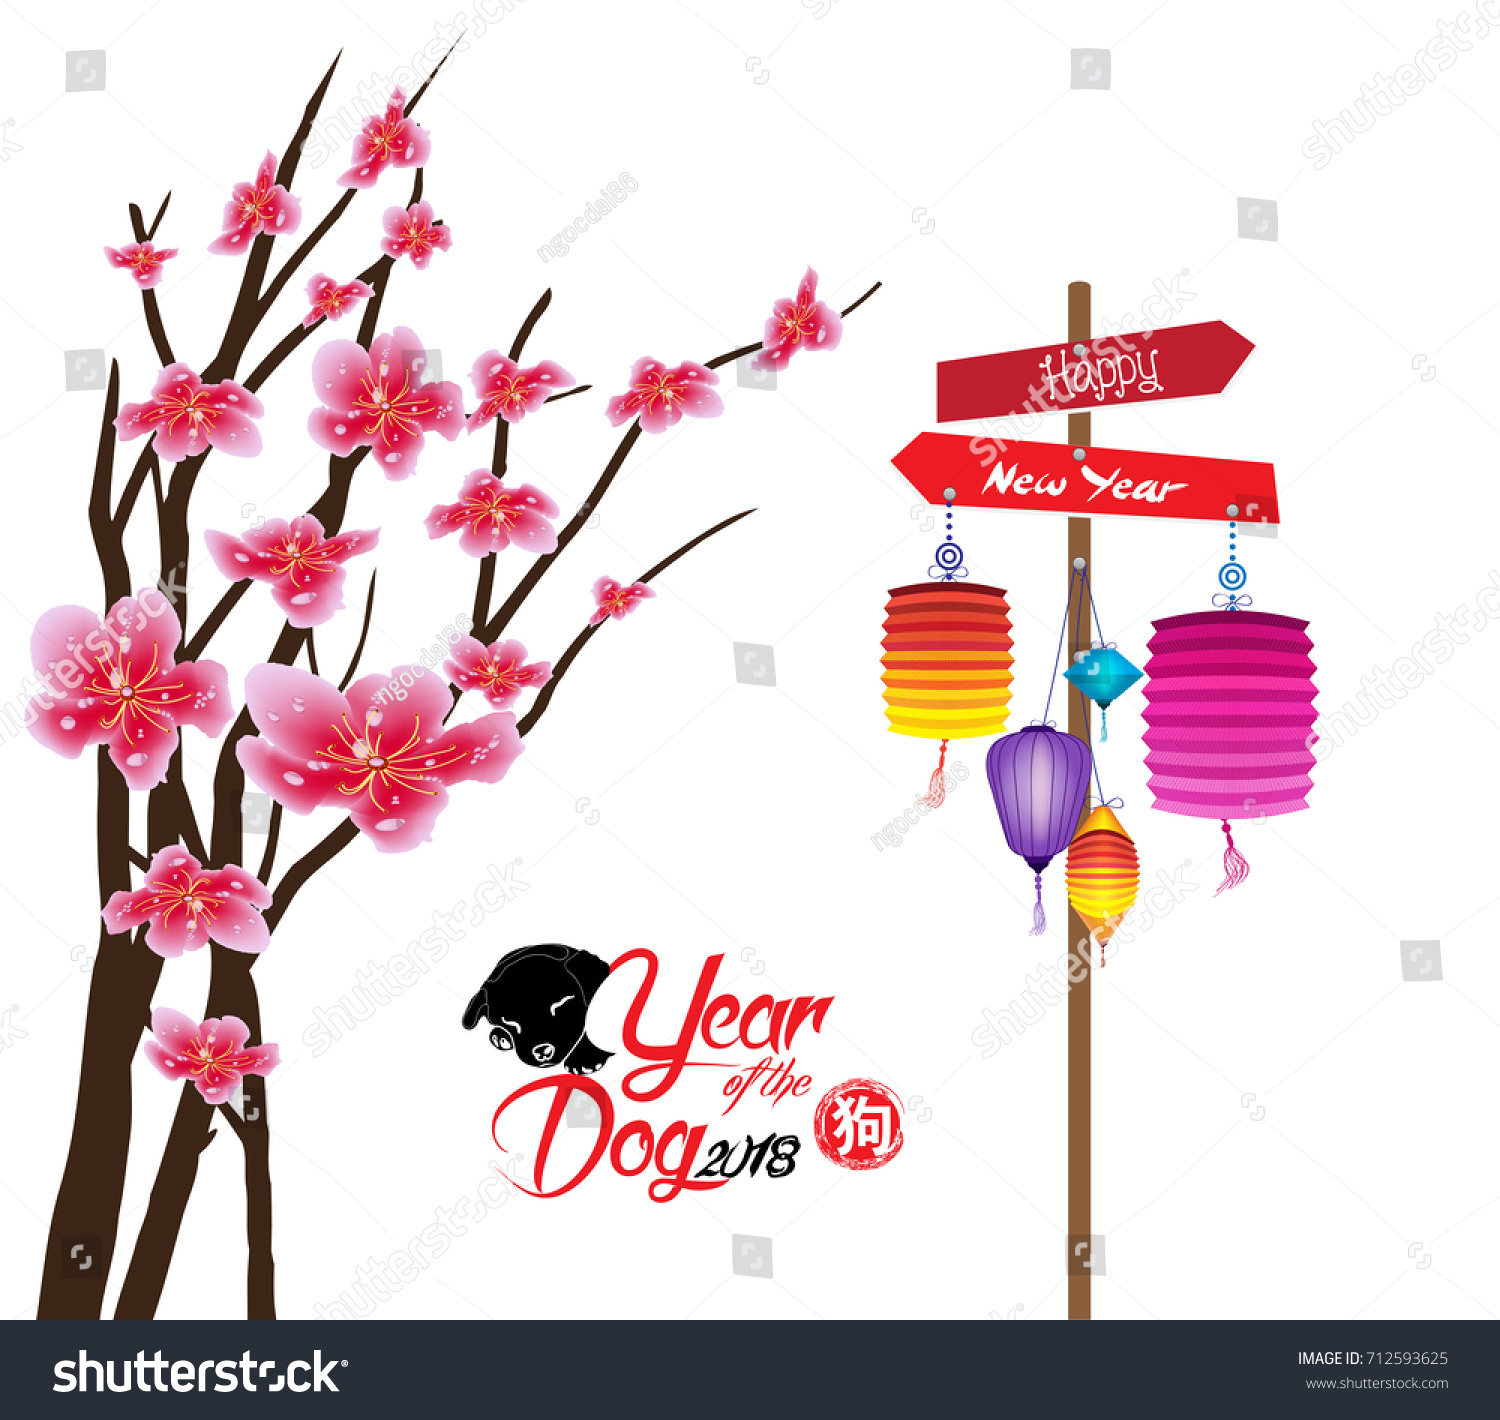 sakura flowers background cherry blossom and lantern isolated white background chinese new year 2018